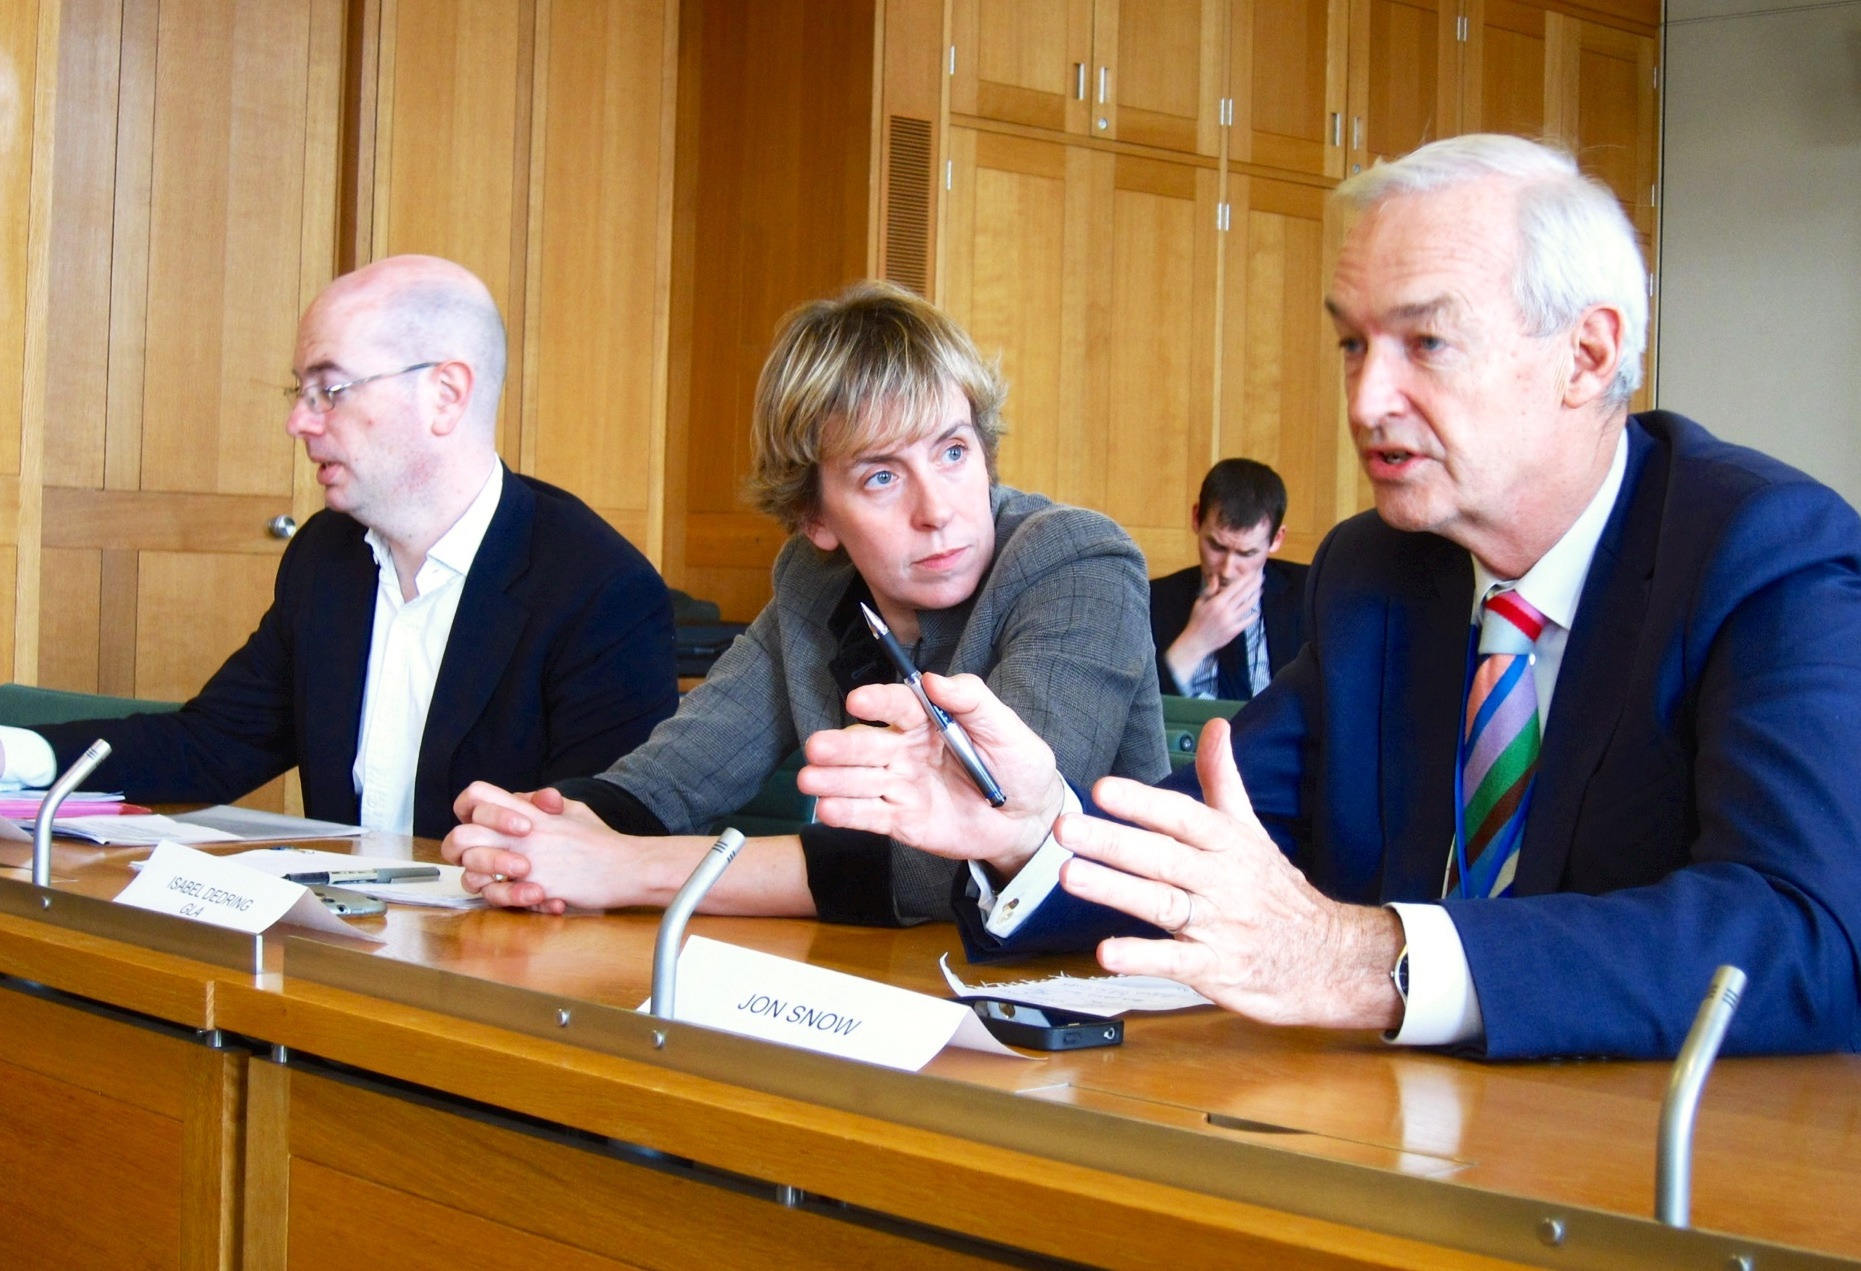 Jon Snow gives evidence to the Get Britain Cycling Inquiry